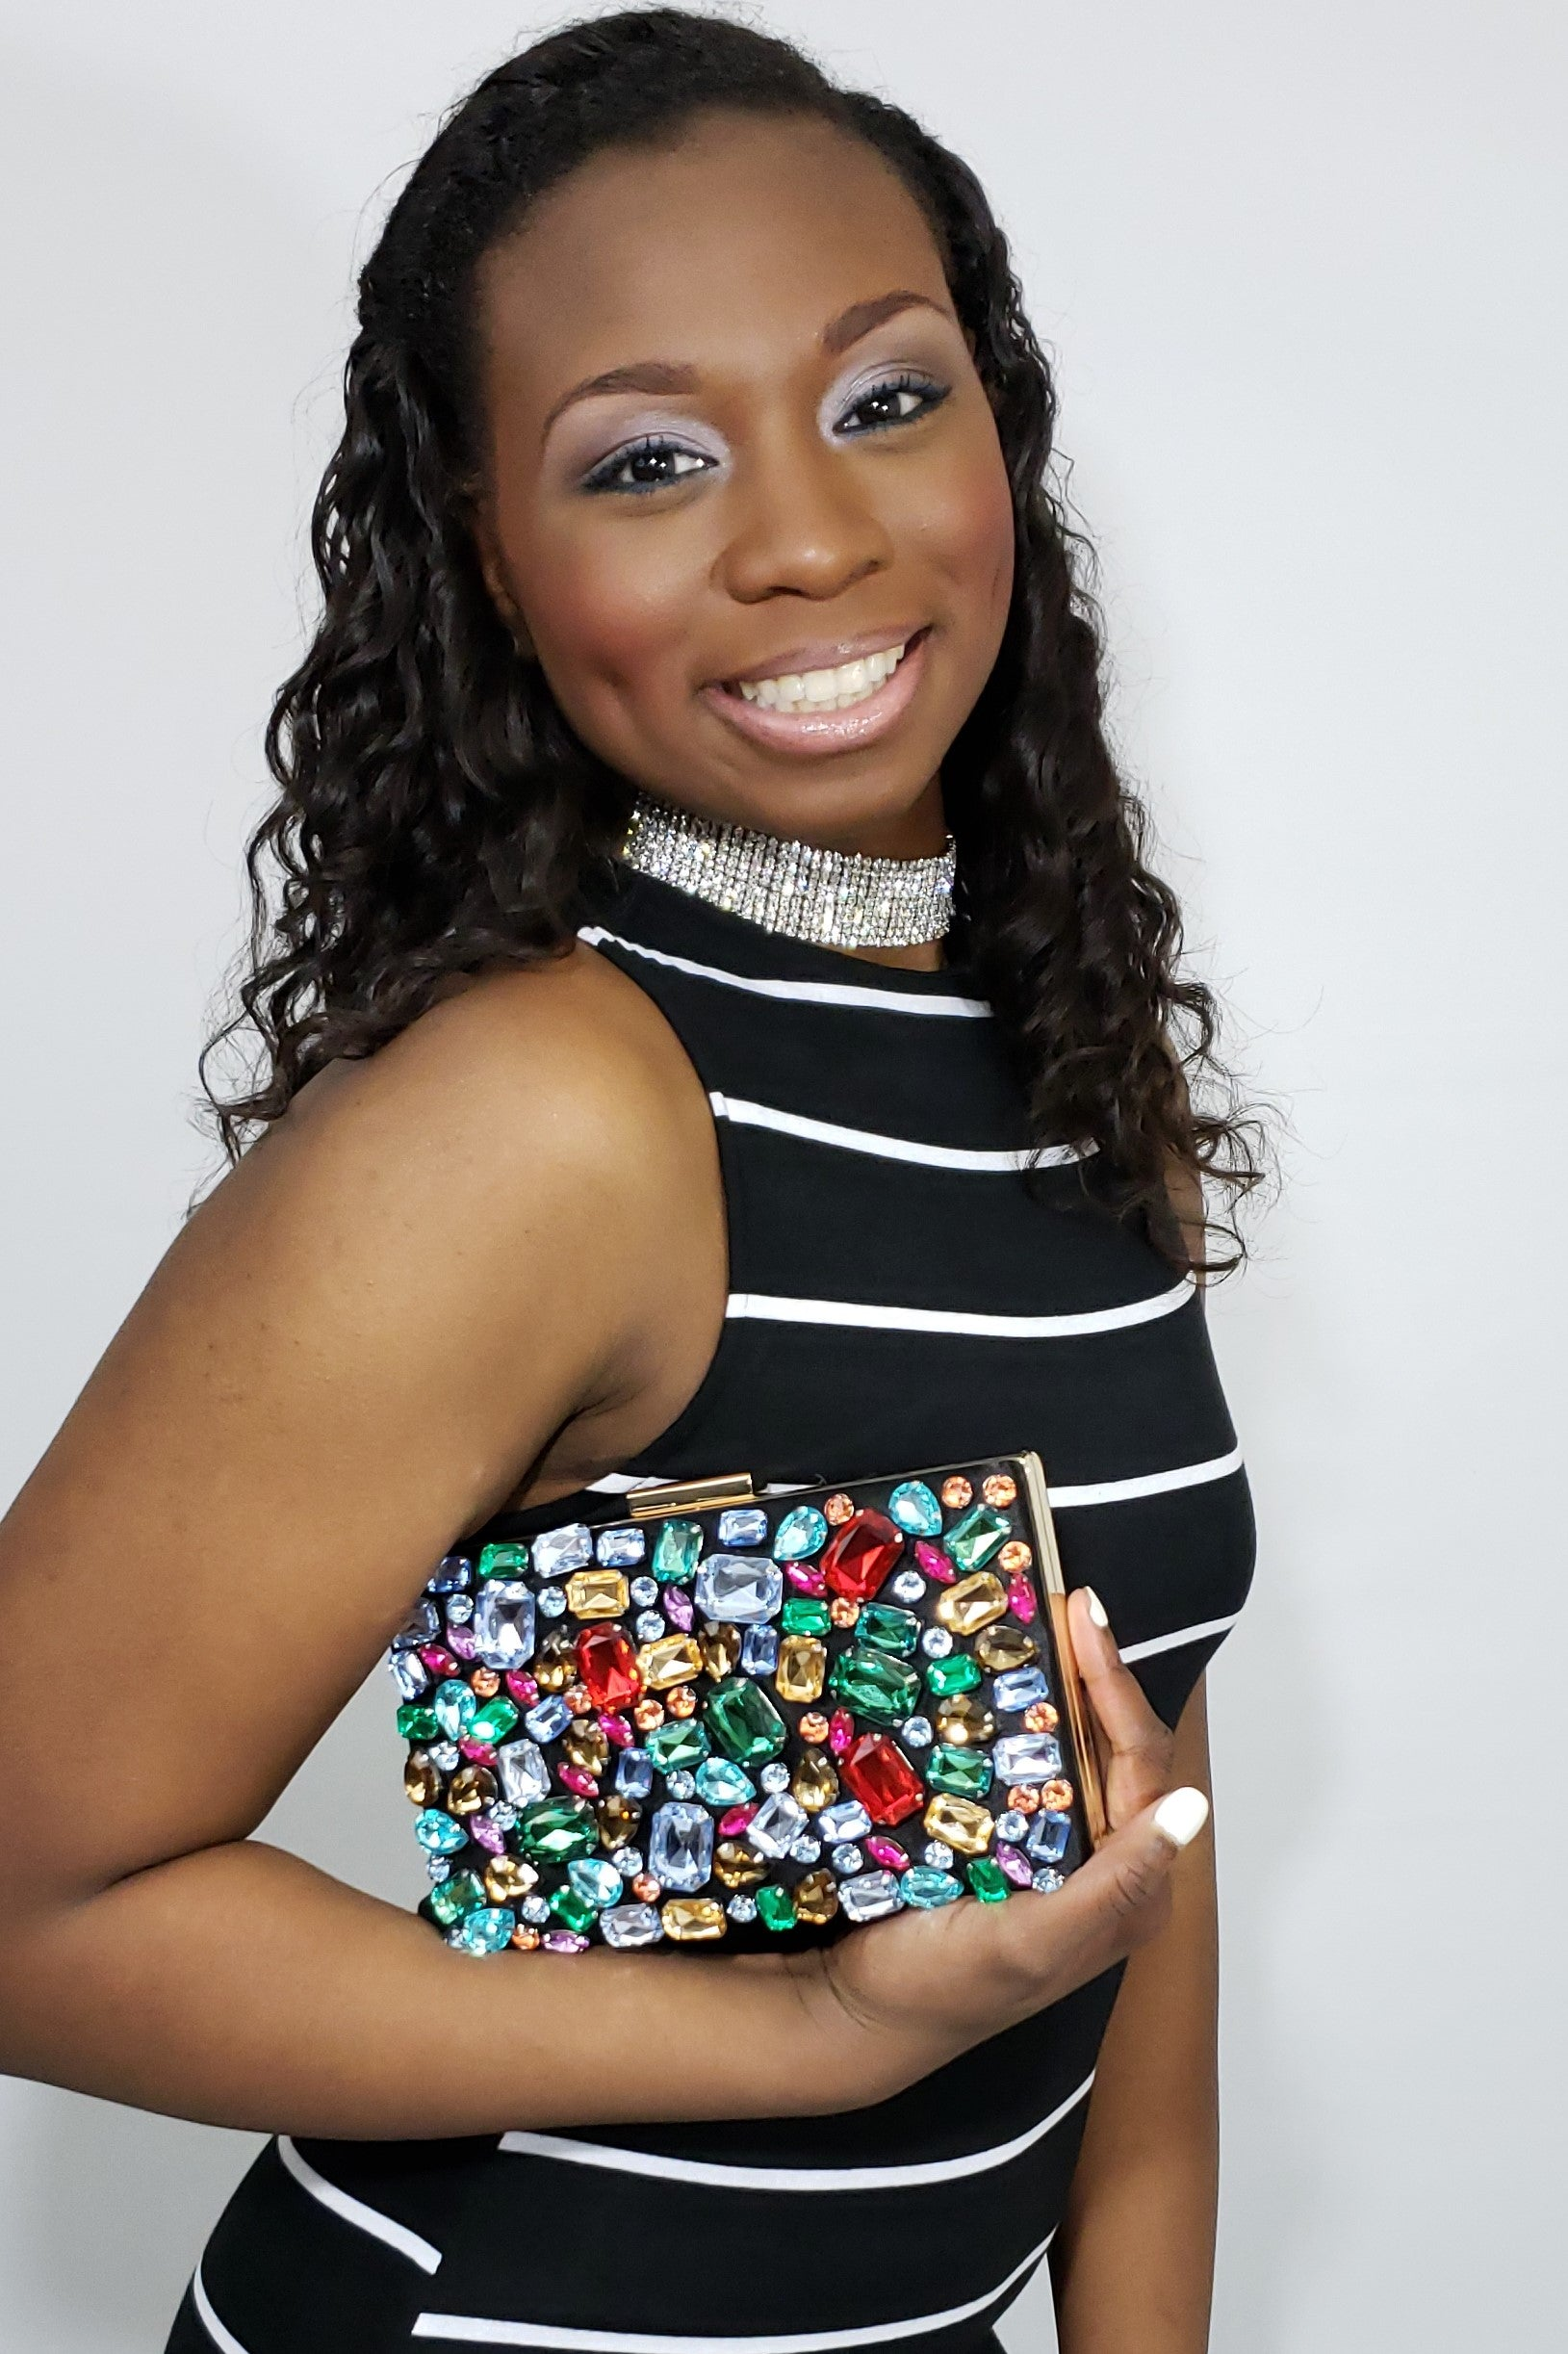 All Eyes on Me Multi-Jewel Tone Clutch - Houzz of DVA Boutique